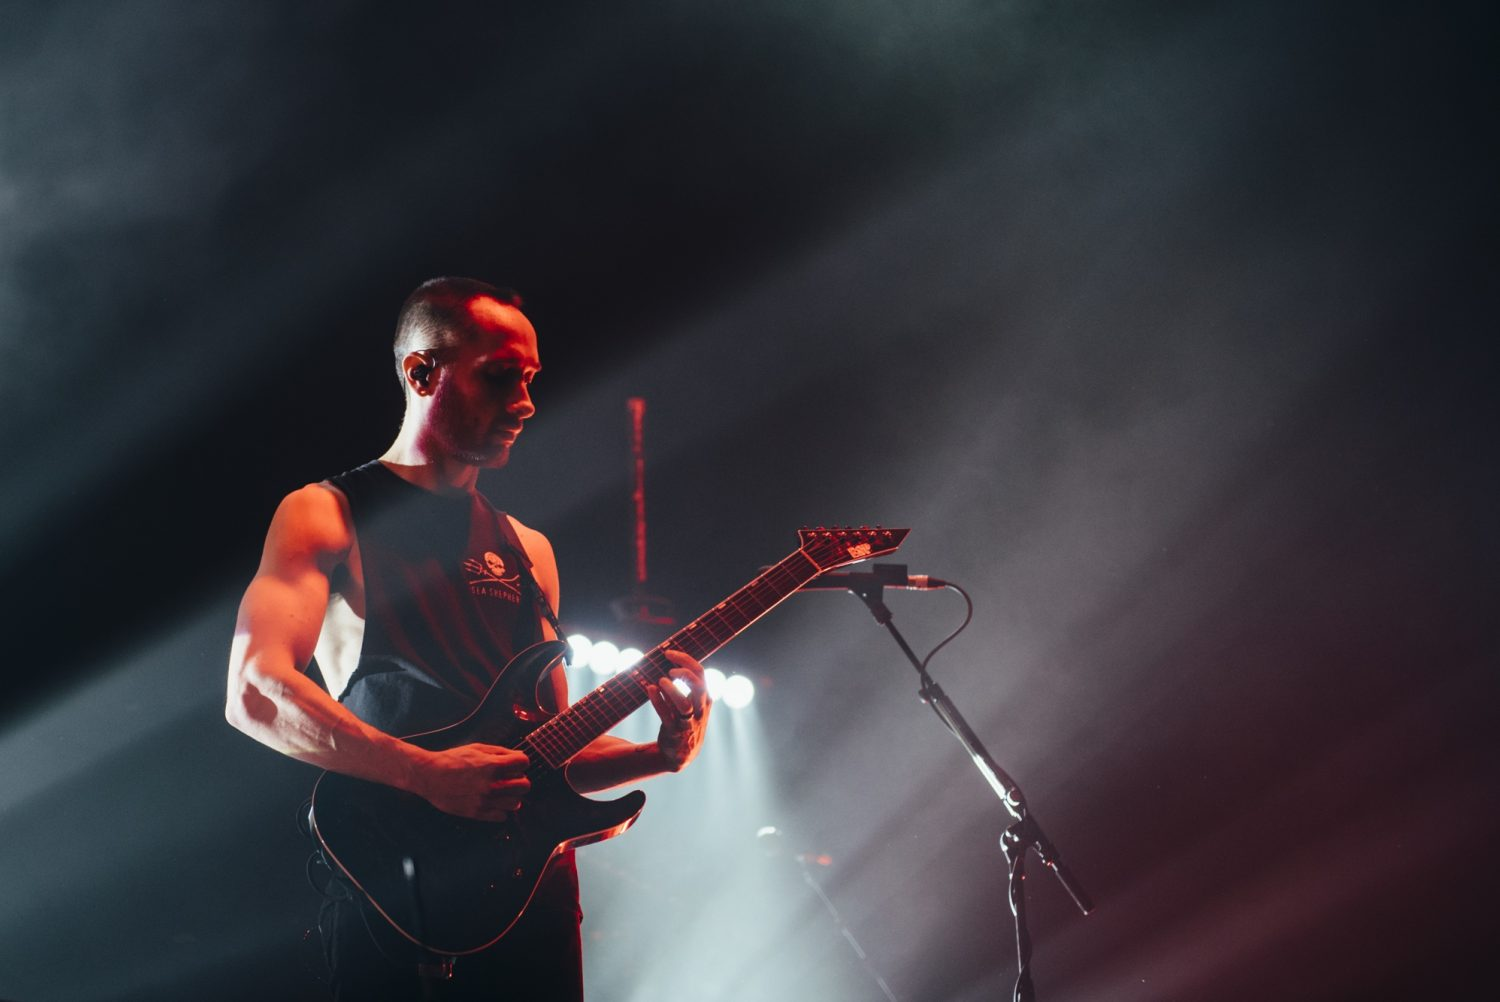 Architects' massive show at Wembley Arena sees them reach new heights